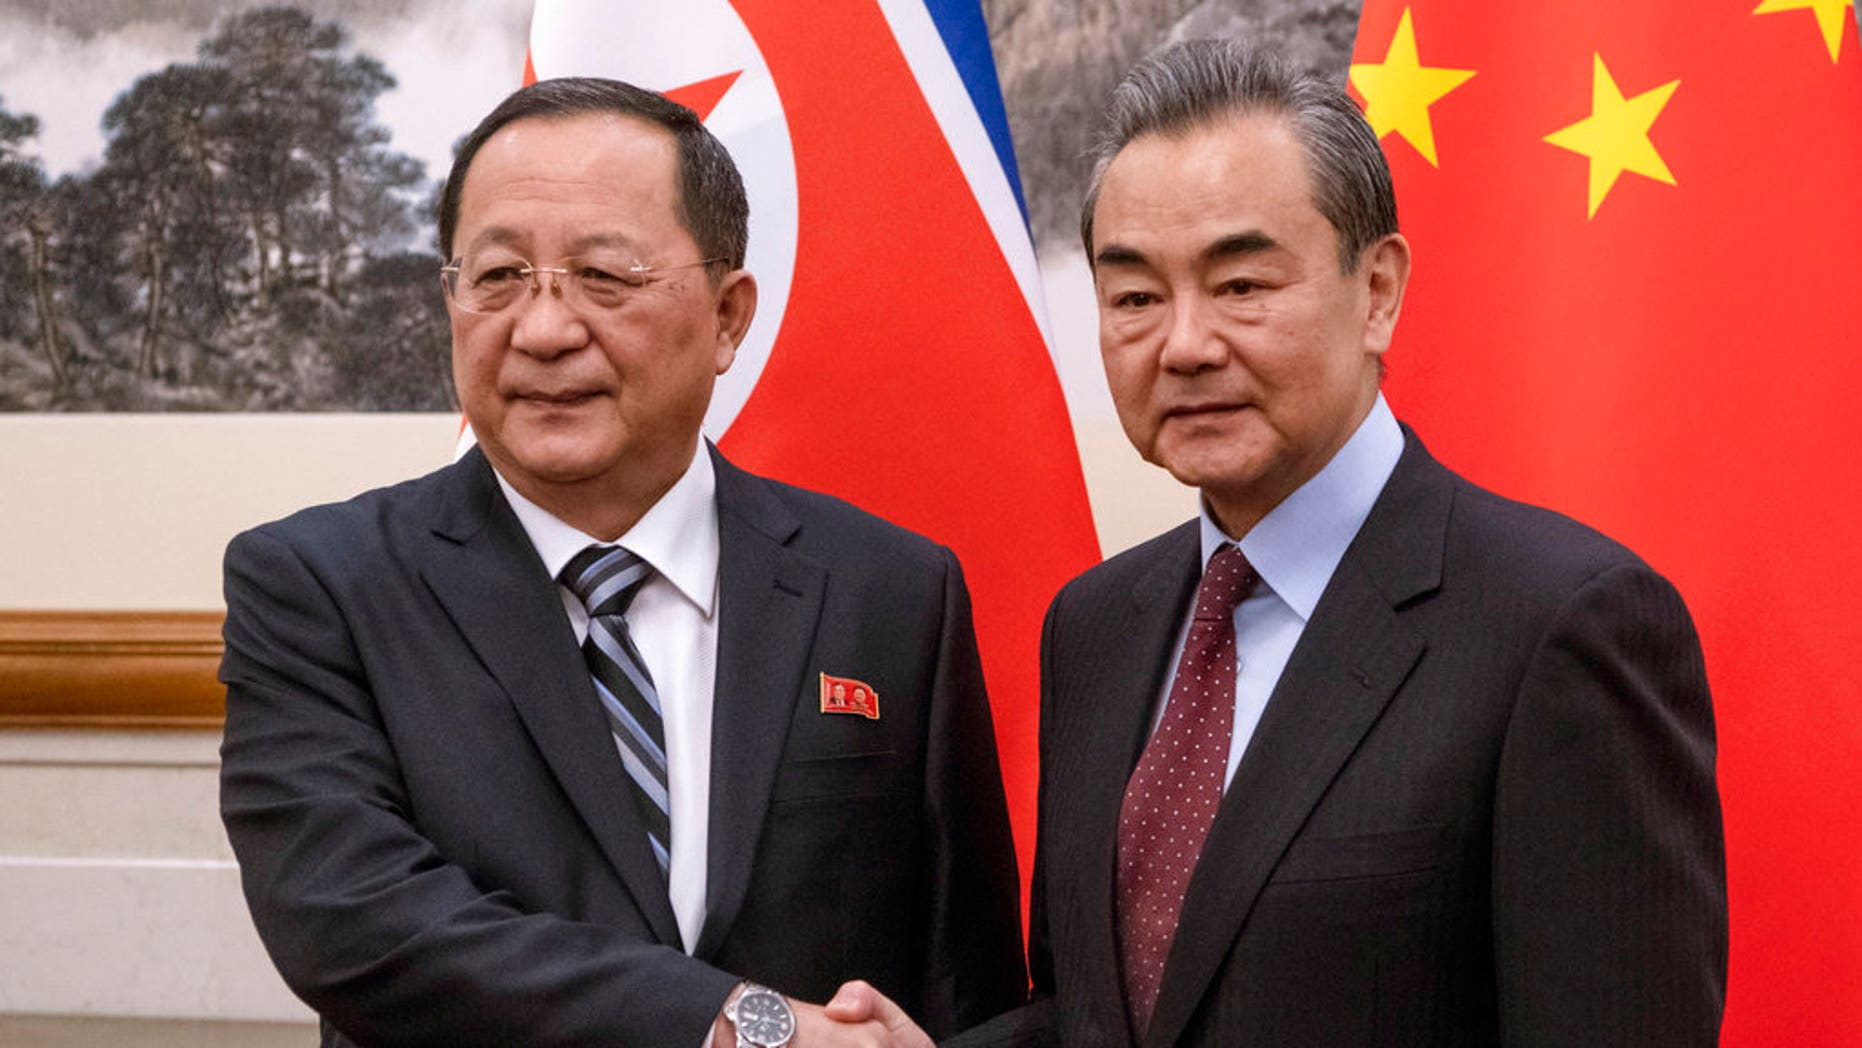 North Korean Foreign Minister Ri Yong Ho, left meets China's Foreign Minister Wang Yi at the Diaoyutai State Guesthouse in Beijing.